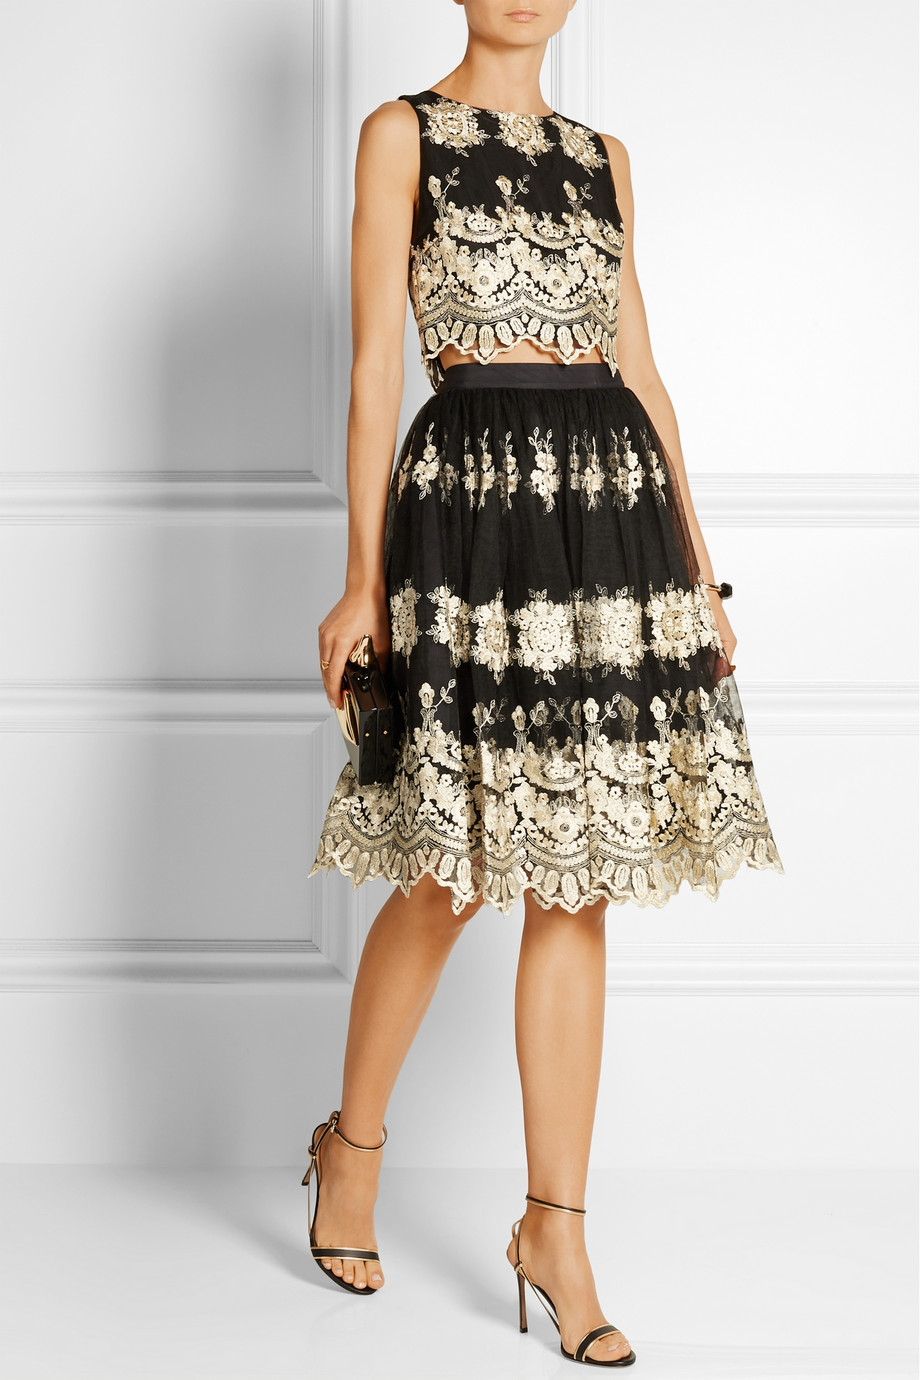 Holiday Wedding Guest Outfit-Alice Olivia Justina Top Skirt